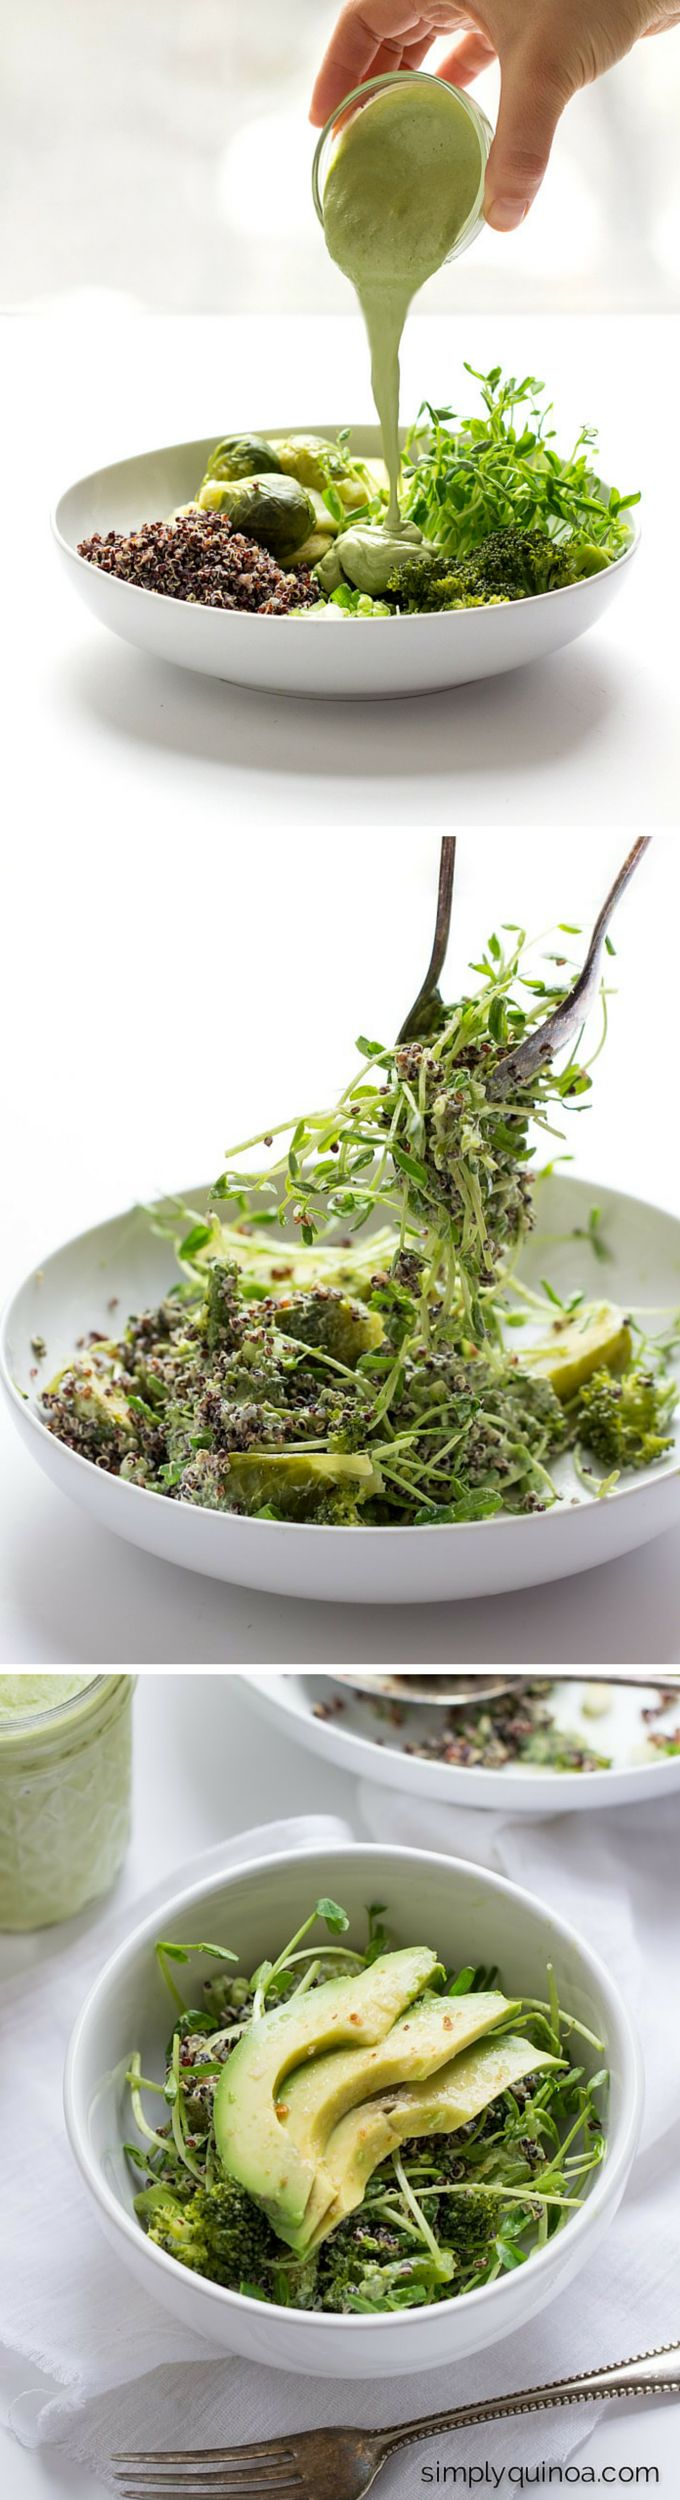 I've been needing a recipe to brighten my day! This healthy Green Goddess salad uses BLACK QUINOA which adds a perfect crunch and texture. It's also loaded up with lots of green veggies and is smothered in a homemade (and vegan!!) green goddess dressing. So good!